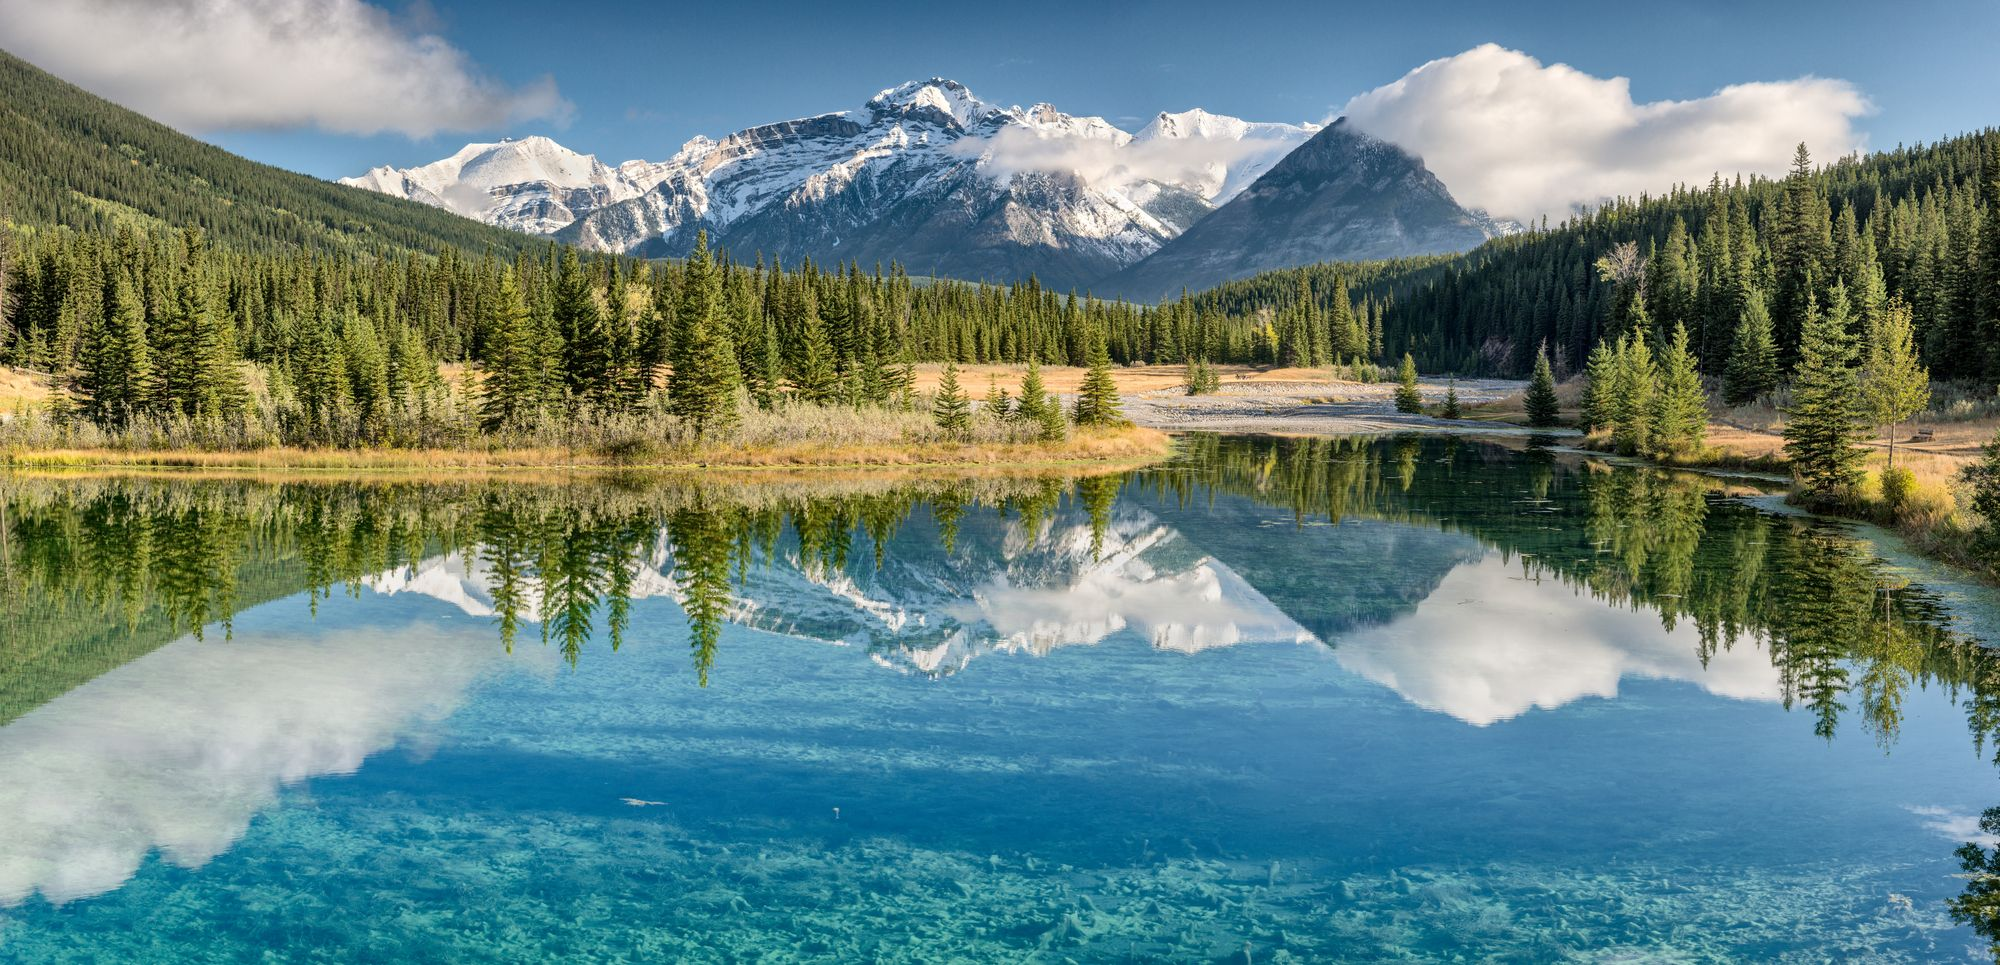 Travel to Banff National Park in Alberta, Canada with a home exchange